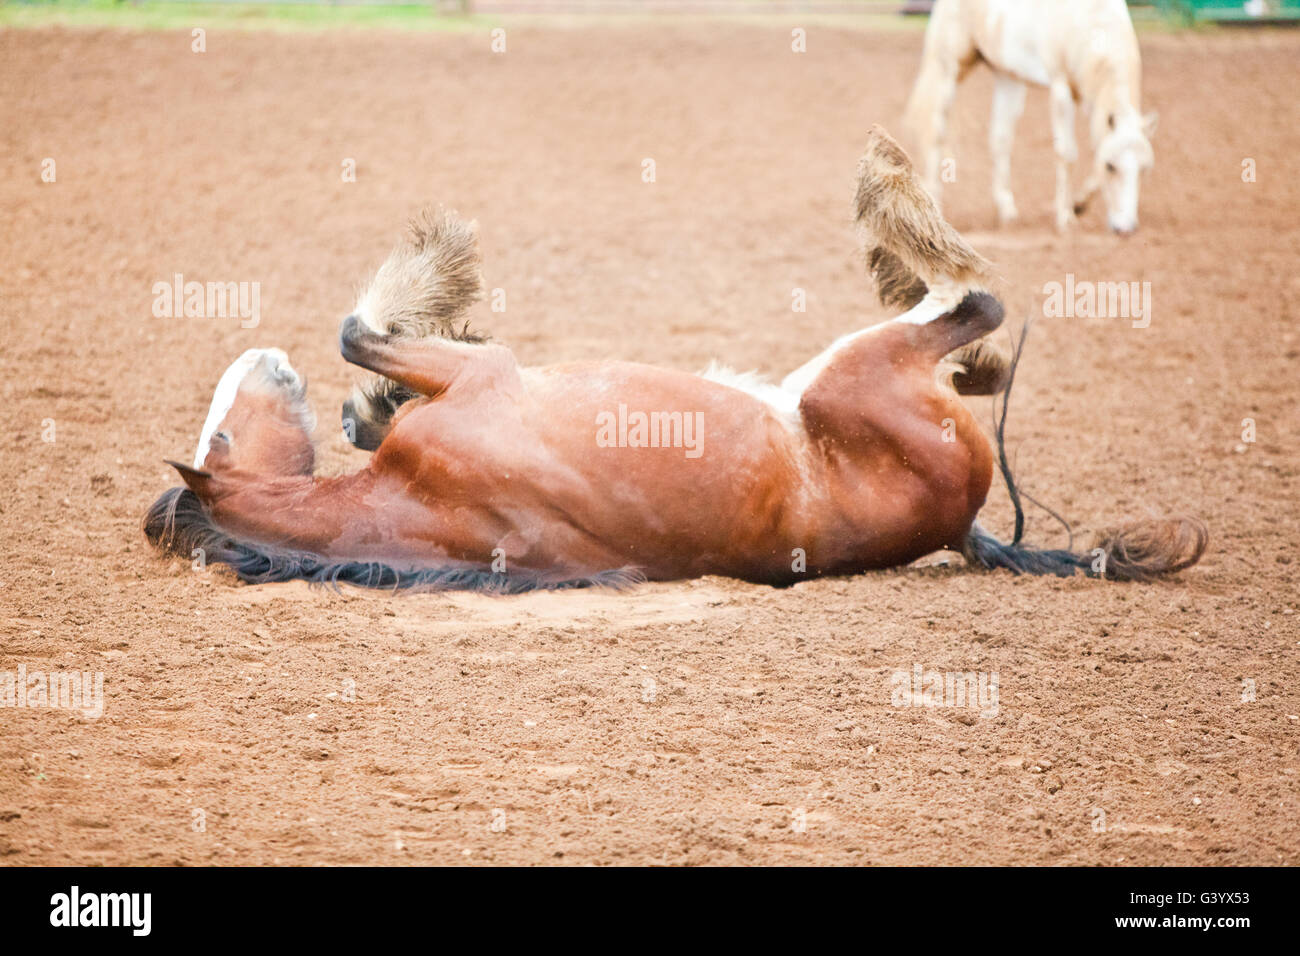 A big draft horse rolling in the rodeo ring - Stock Image